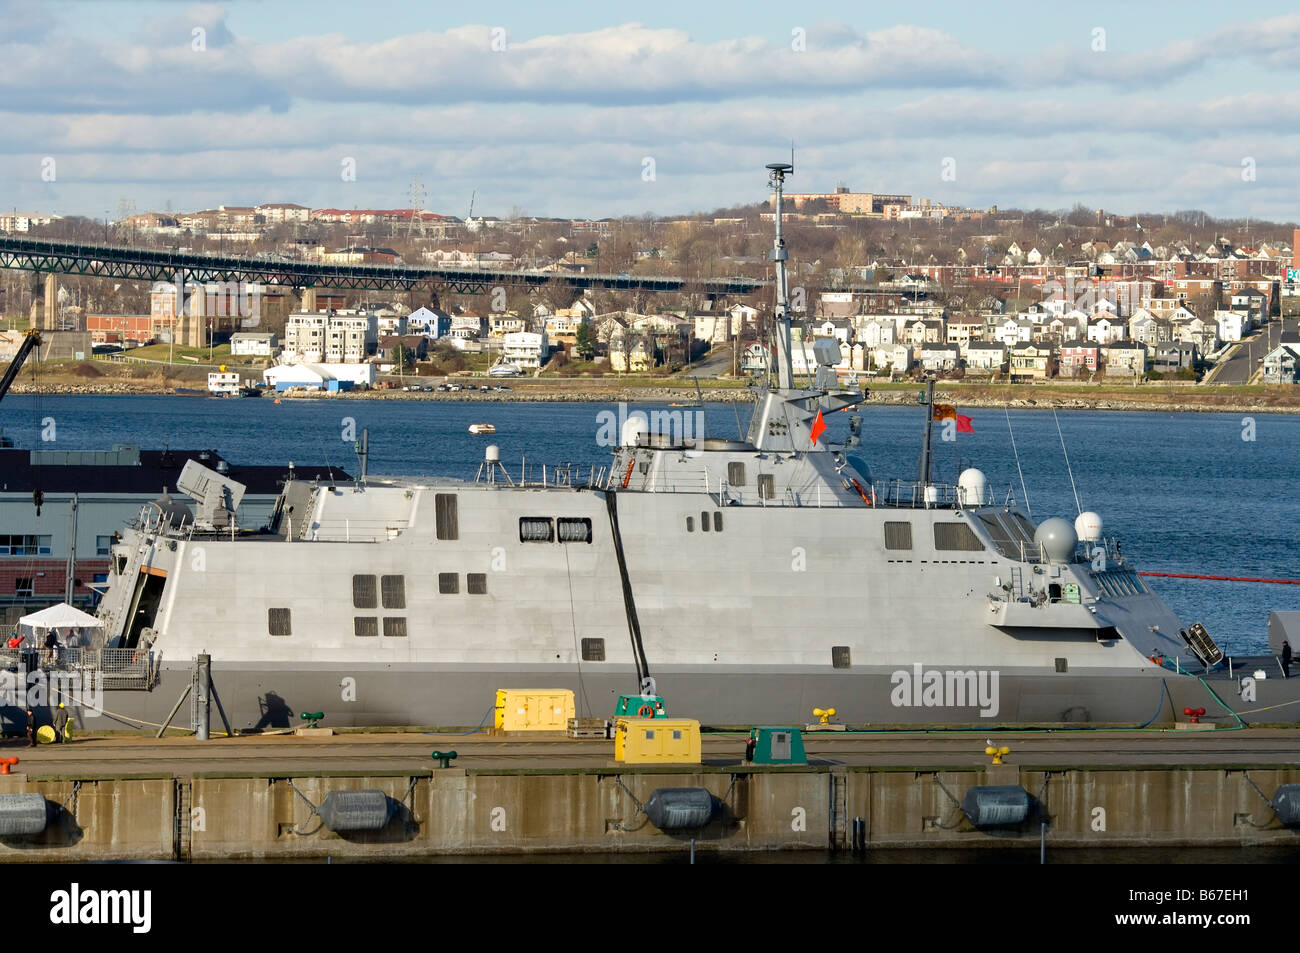 Stealthy architecture of the superstructure of naval vessel. - Stock Image